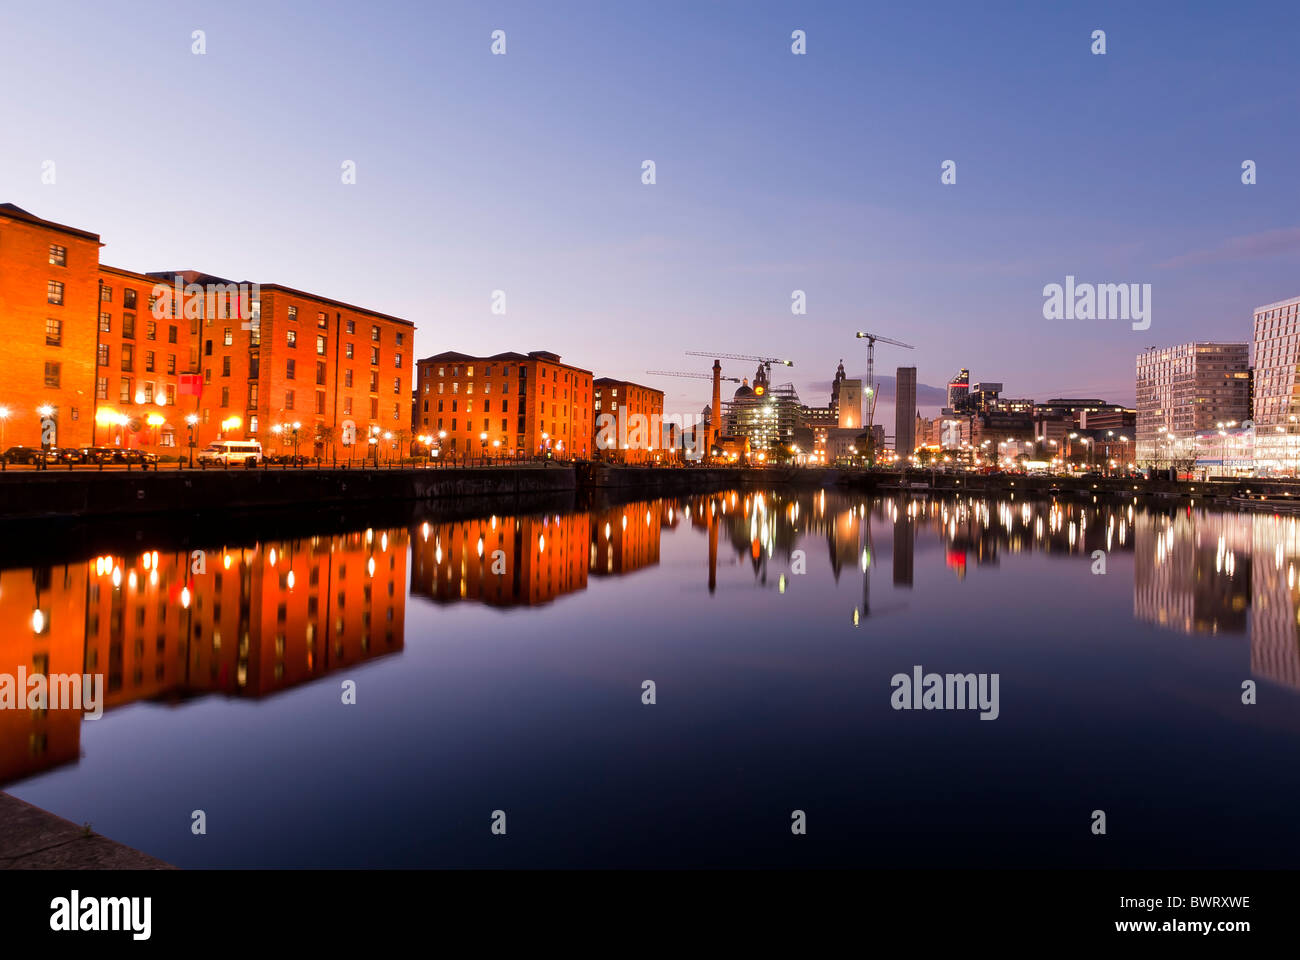 Warehouses reflected in water at the Albert Docks, Liverpool, England, UK - Stock Image